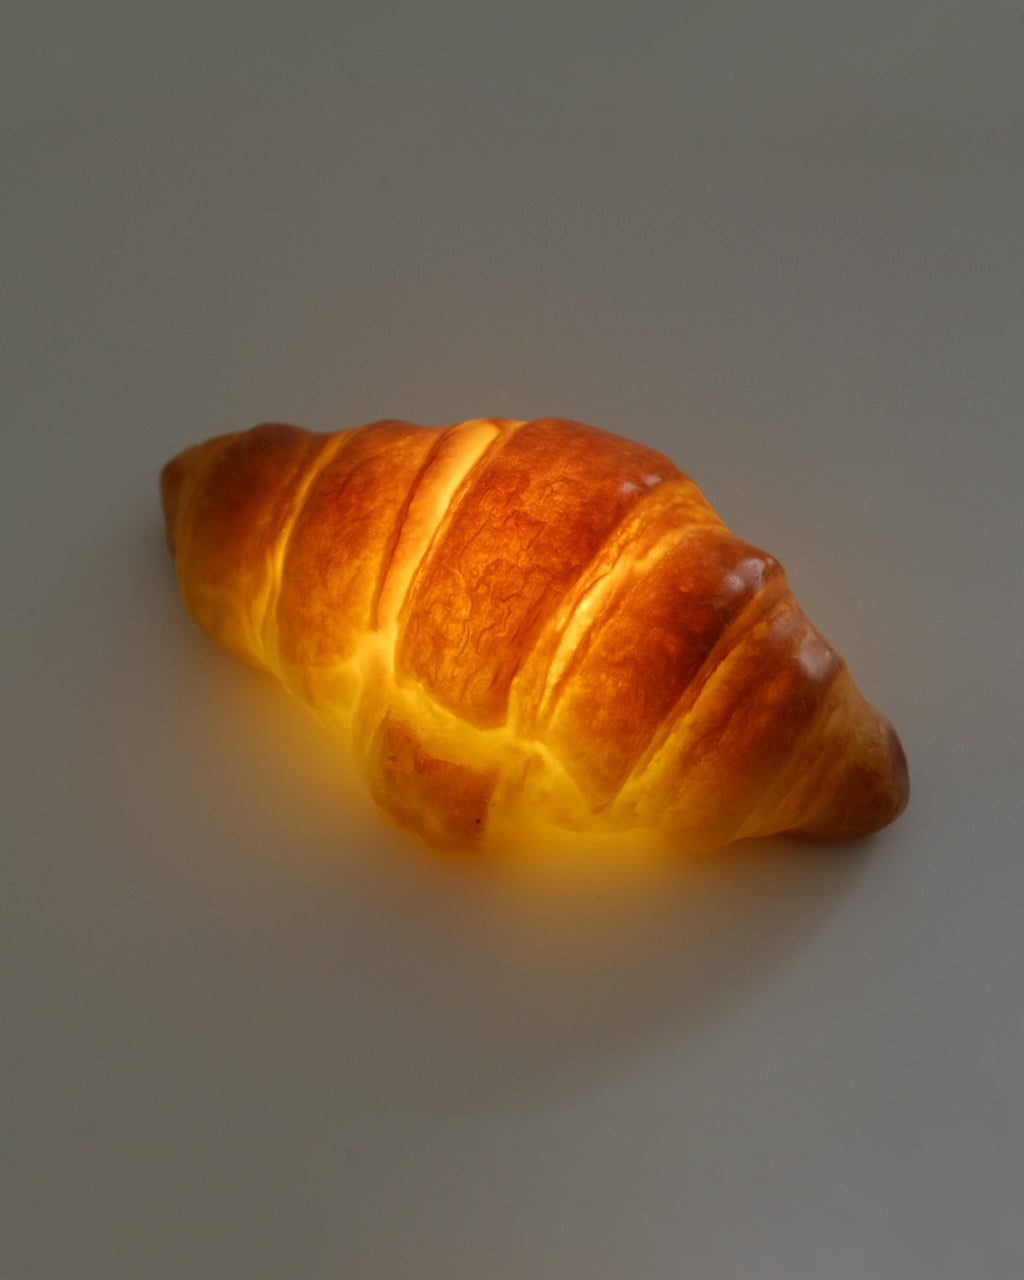 glowing lamp made from a real croissant